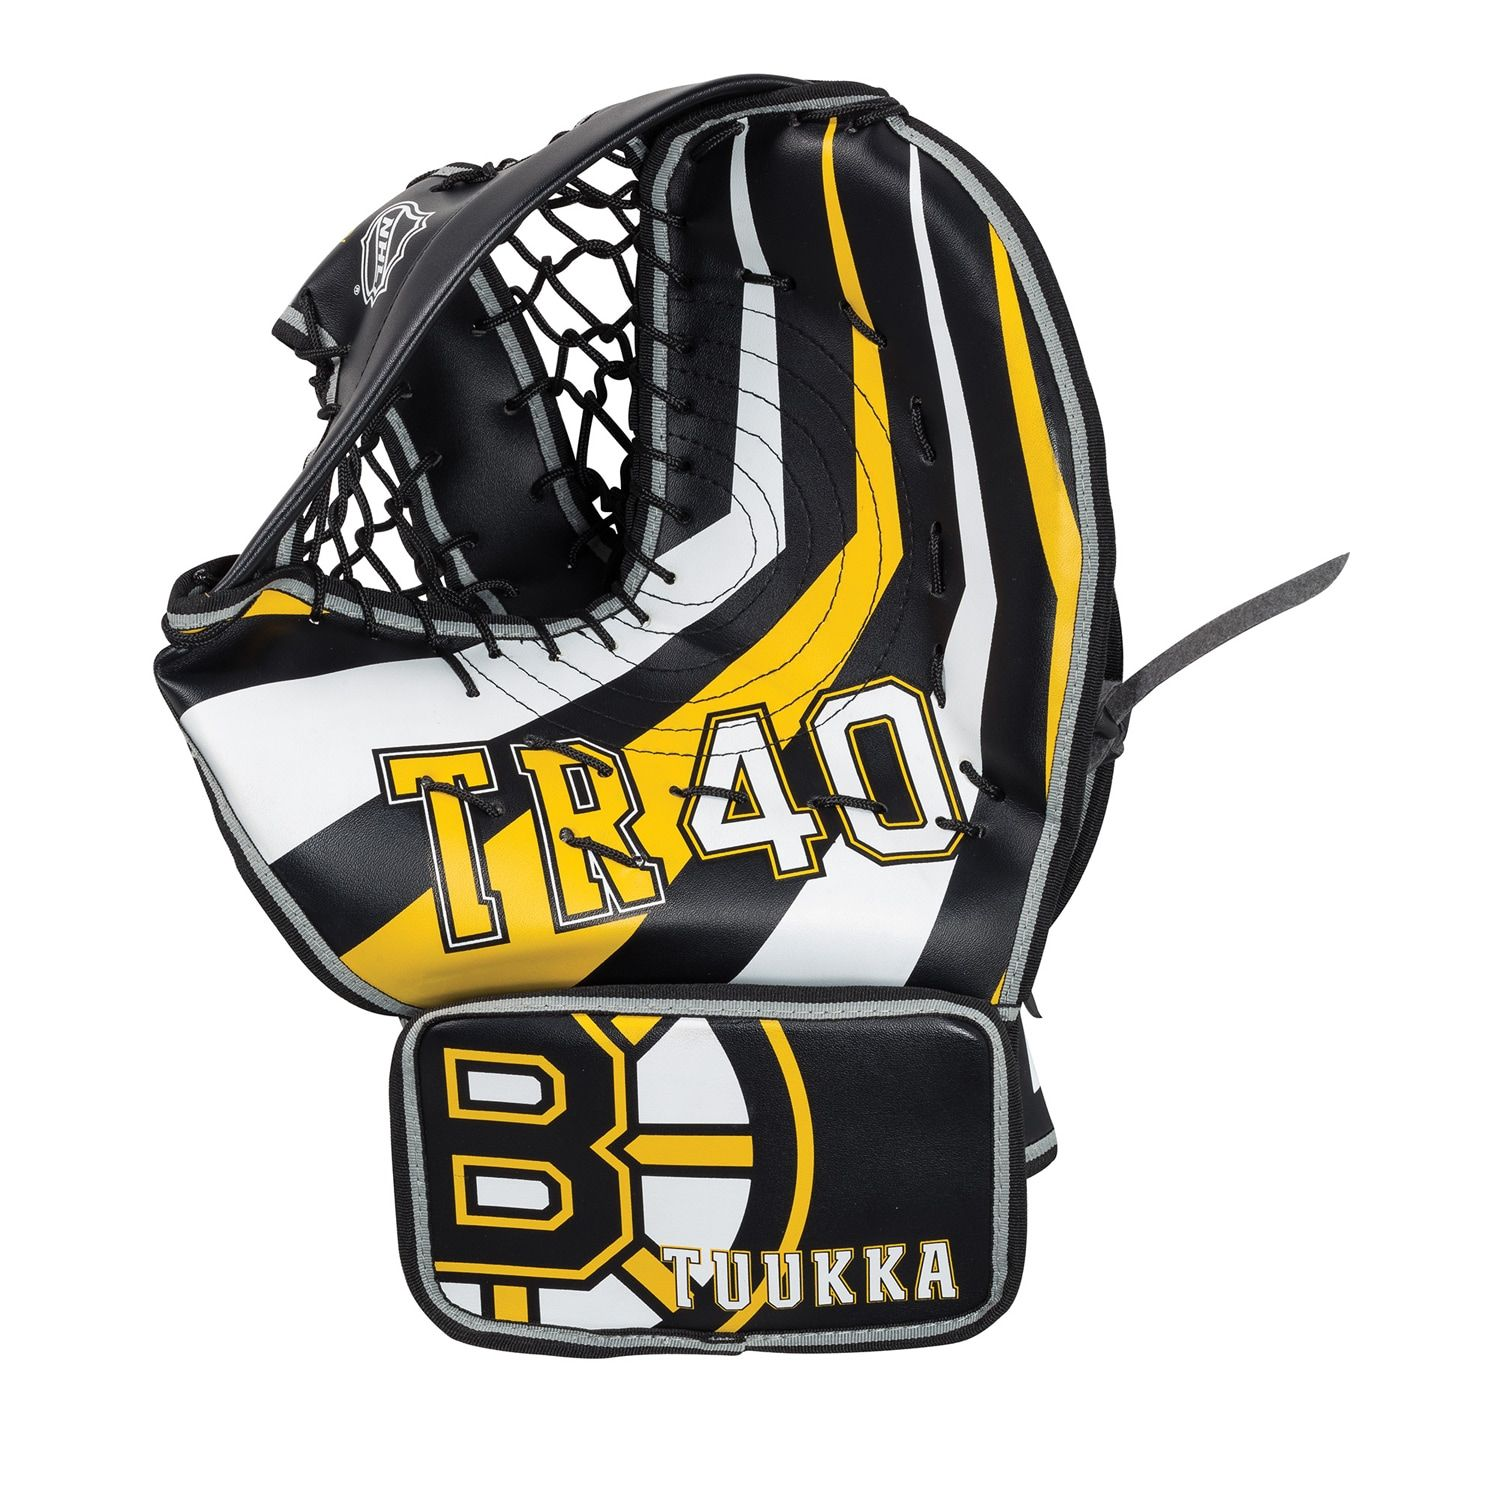 Franklin Youth Tuukka Rask Street Hockey Goalie Equipment Set Tuukka Rask Franklin Youth Franklin Sports Hockey Goalie Equipment Street Hockey